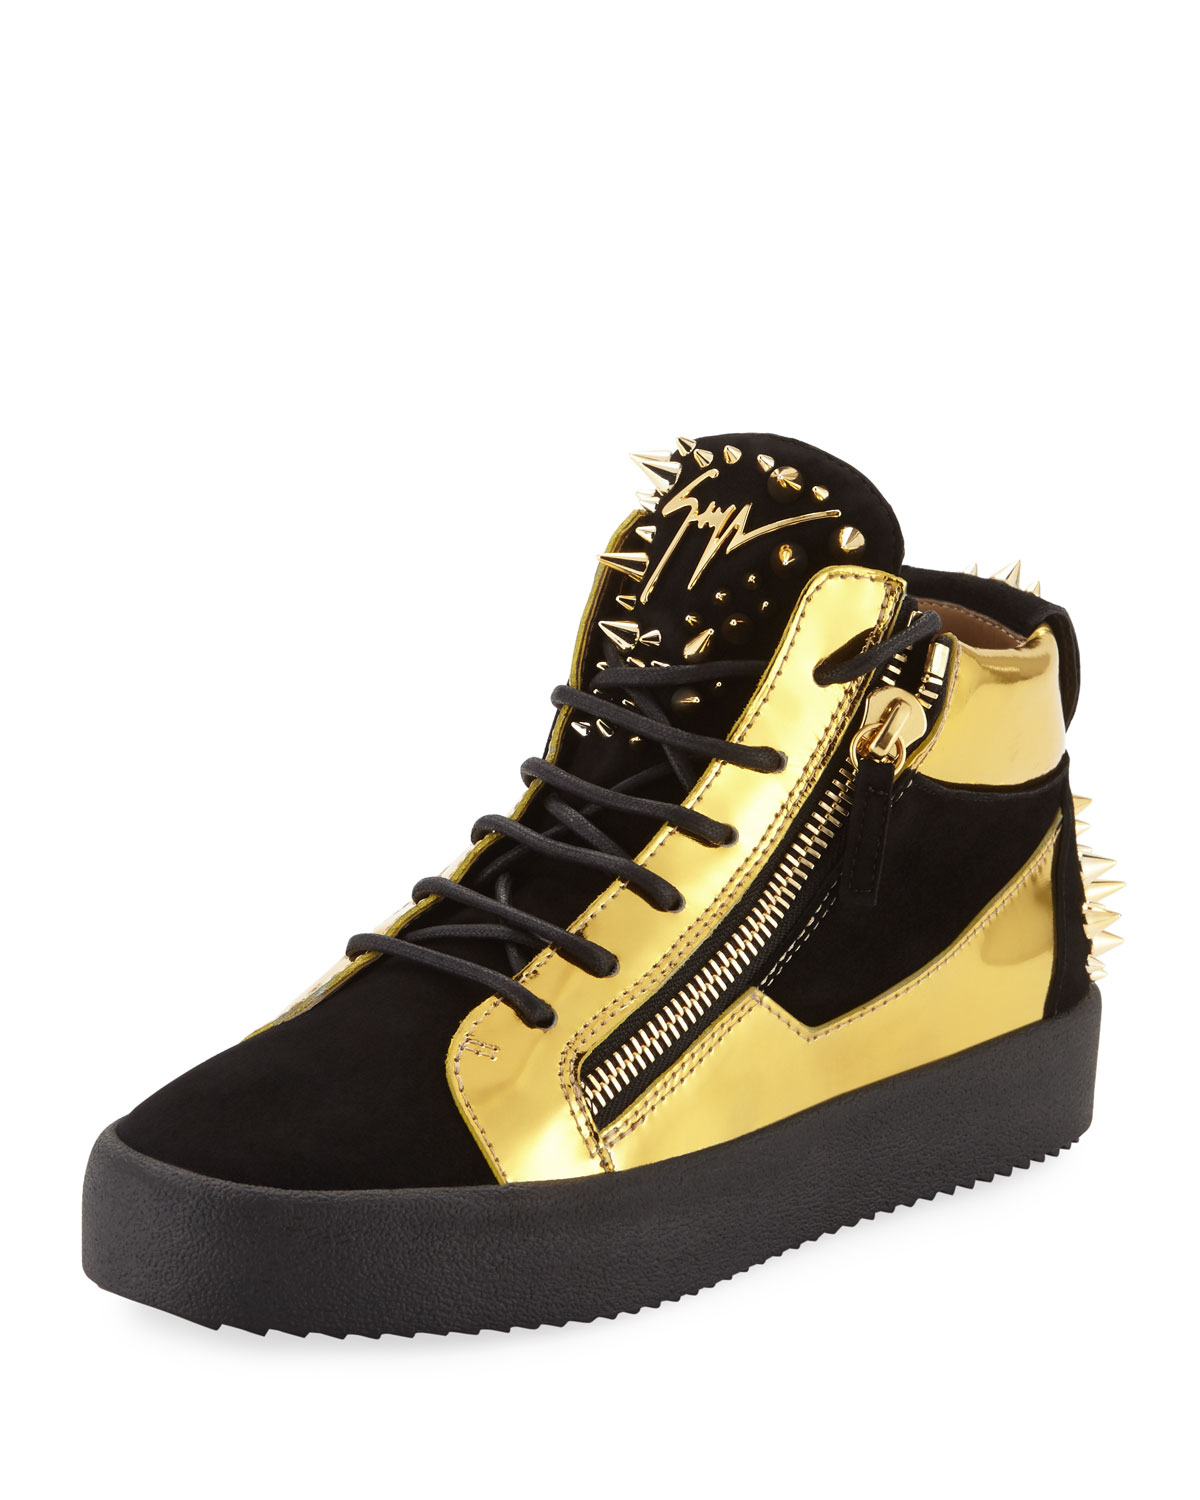 bb175a7573c1 Giuseppe ZanottiMen s Studded Suede   Metallic Leather High-Top Sneakers